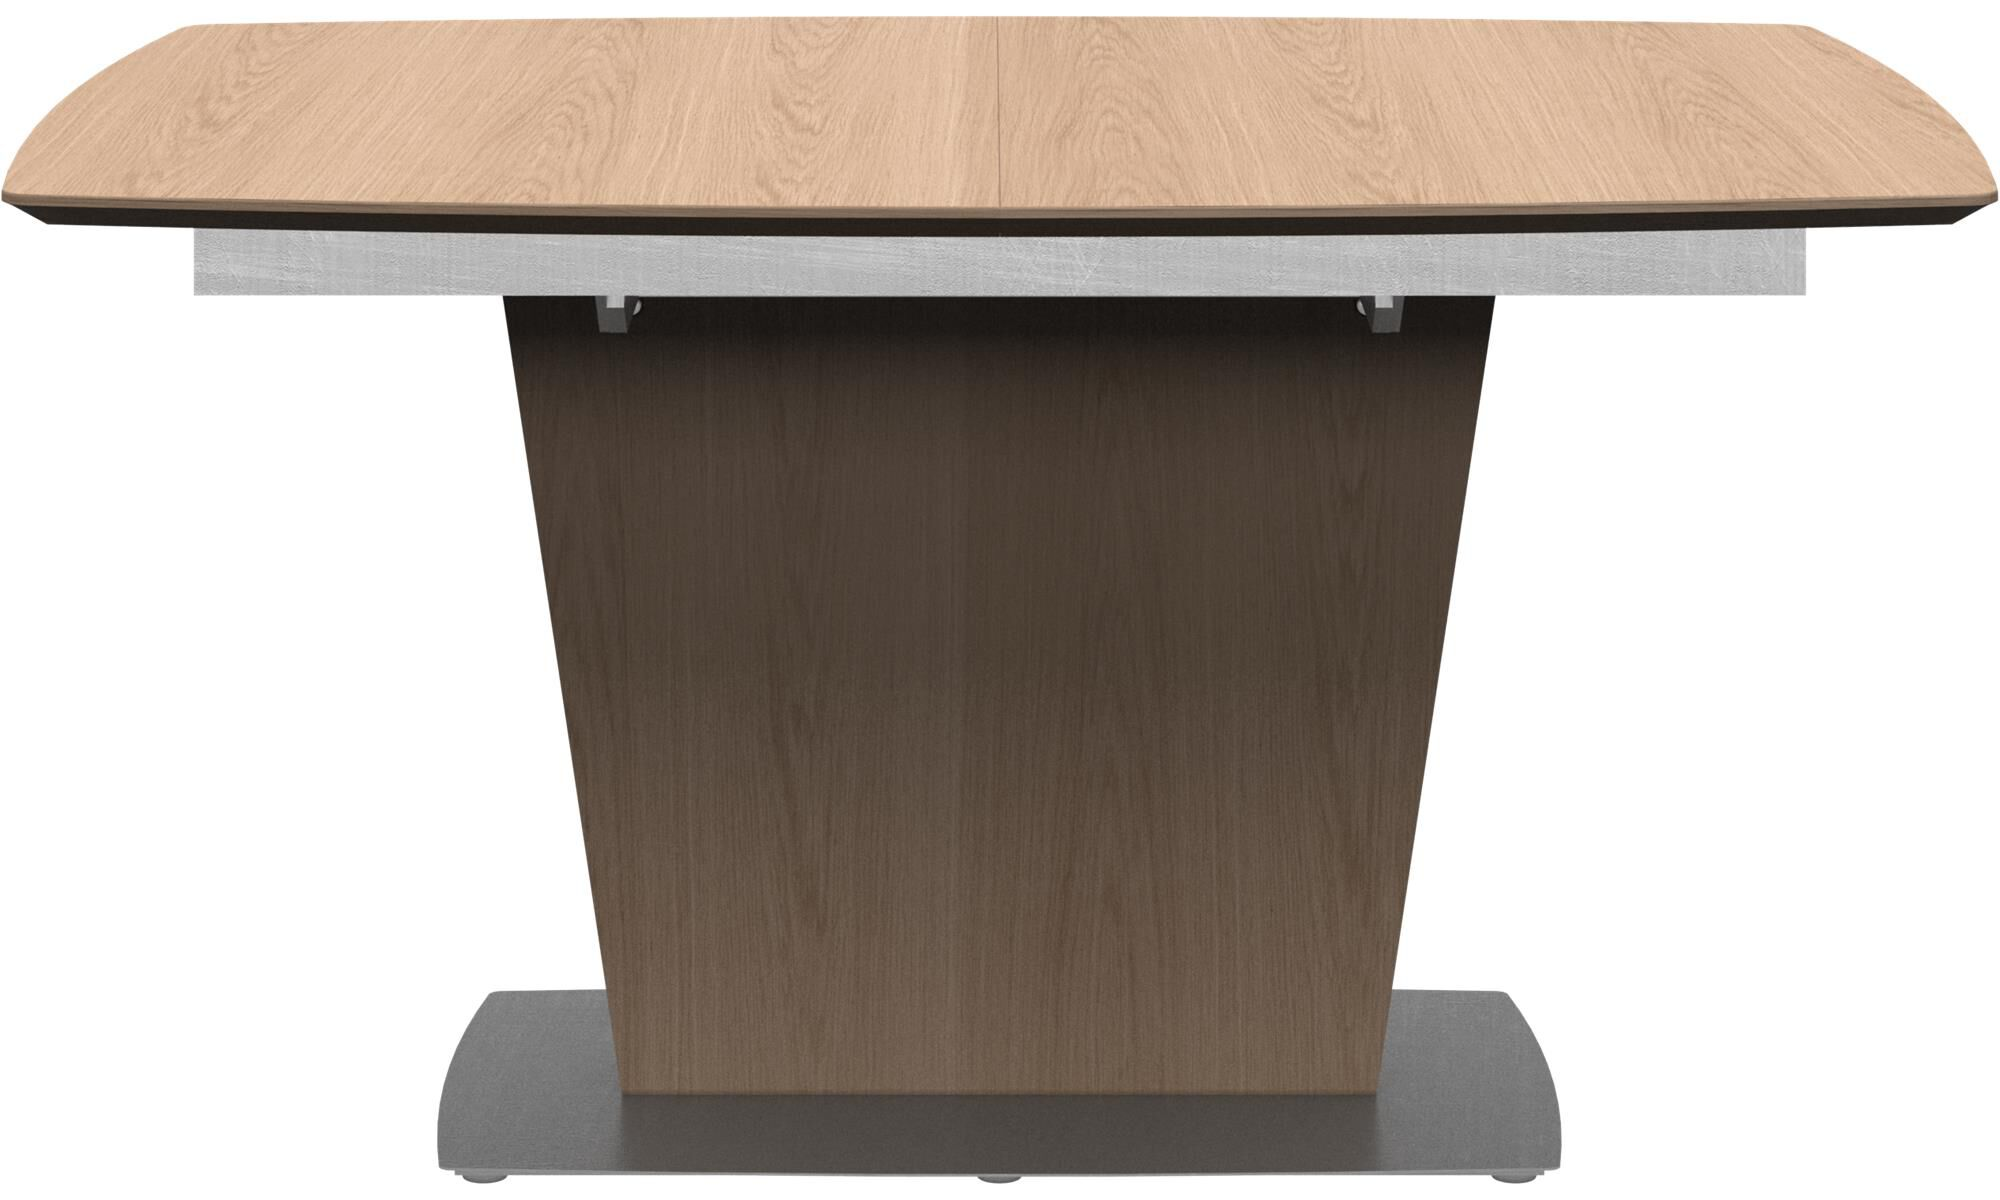 Dining Tables   Milano Table With Supplementary Tabletop   Square   Brown    Oak